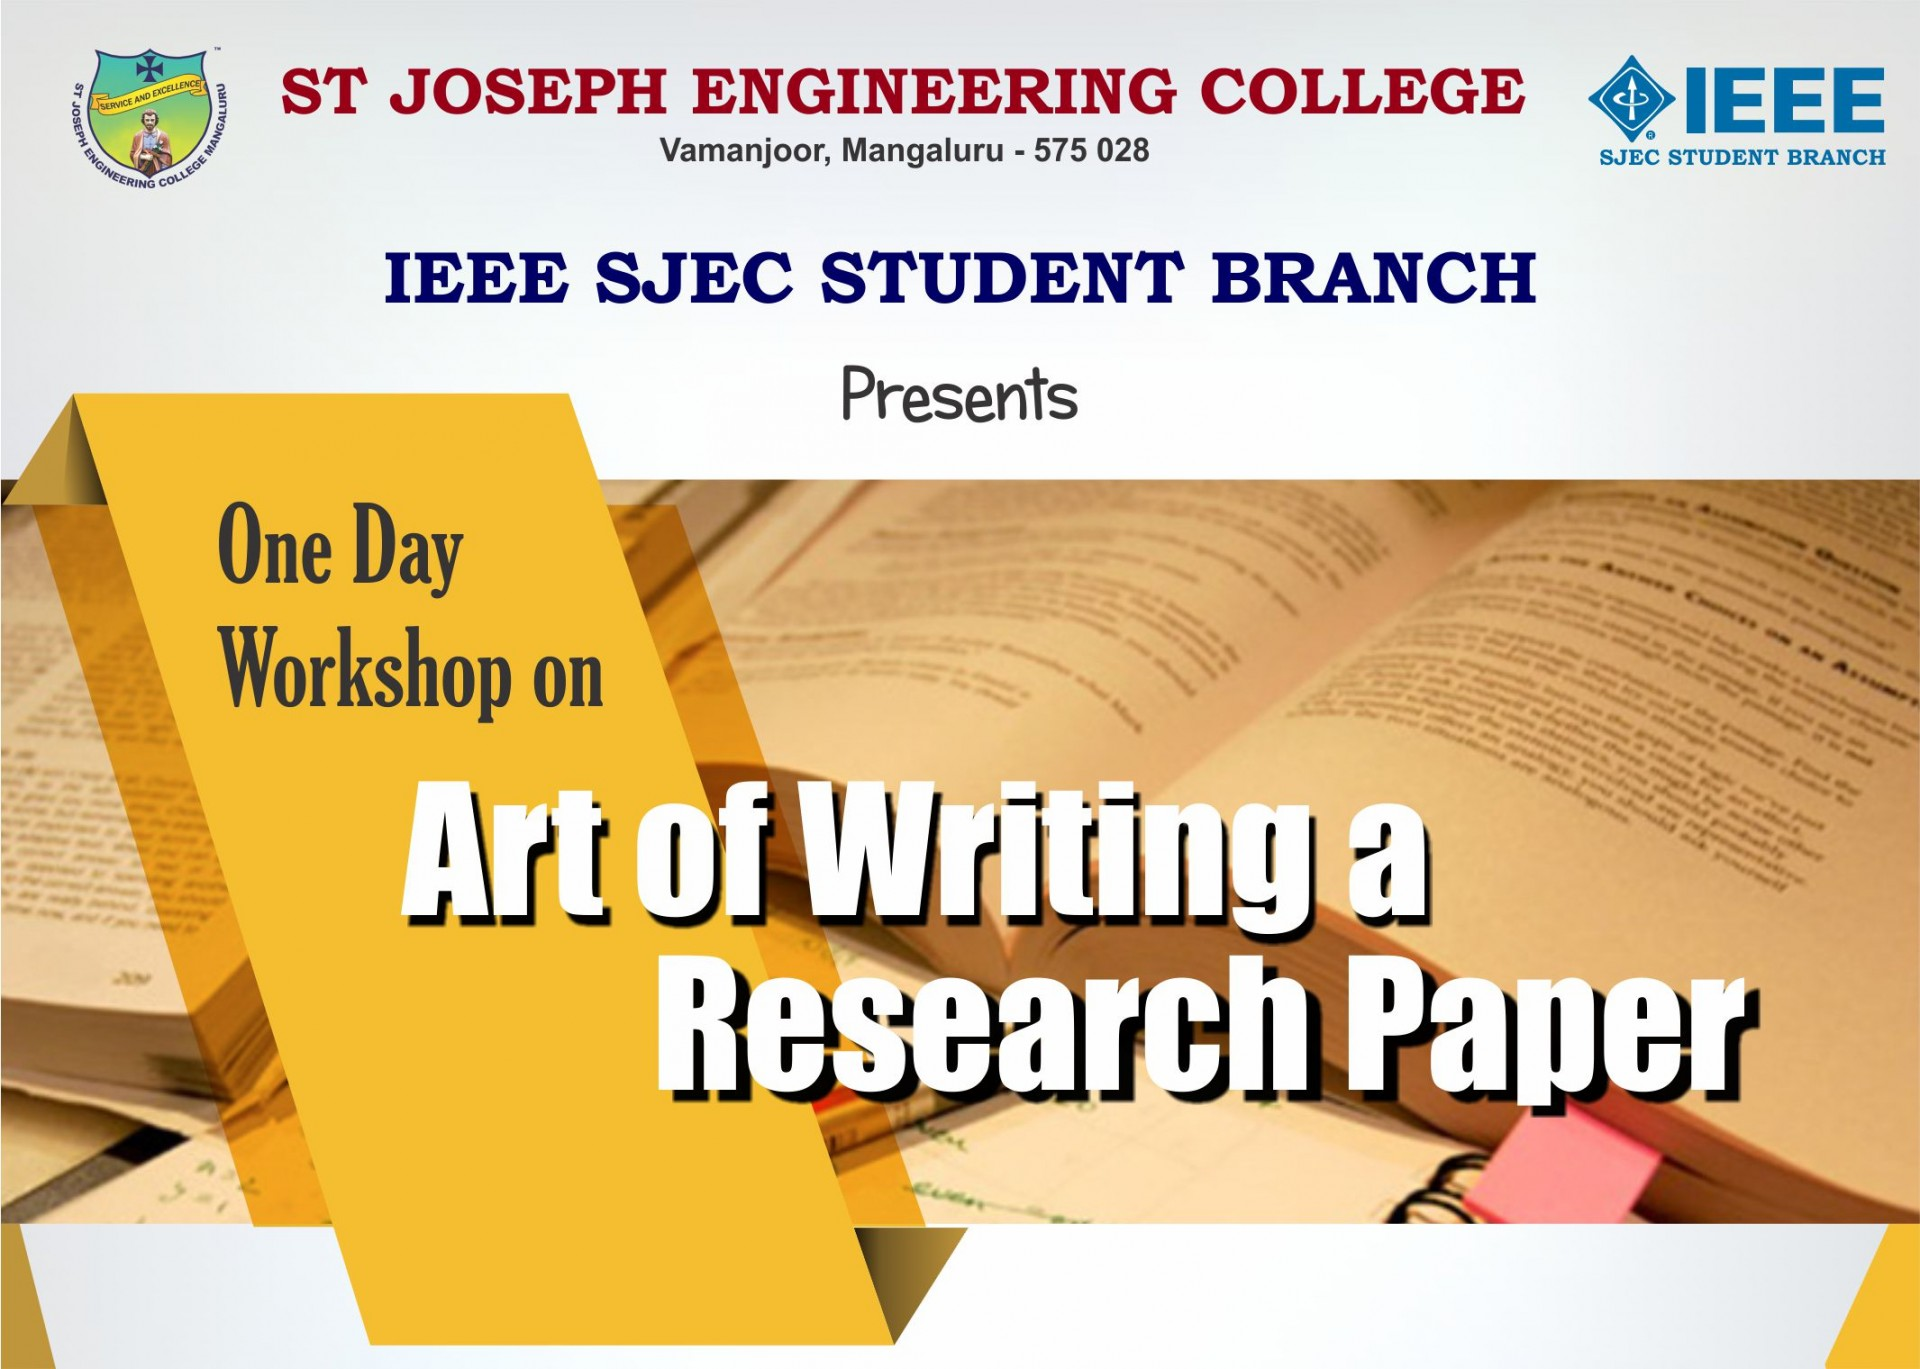 005 Workshop Banner Researchs Writing Fascinating Research Papers Best Paper Services In India Pakistan Format Example Apa 1920